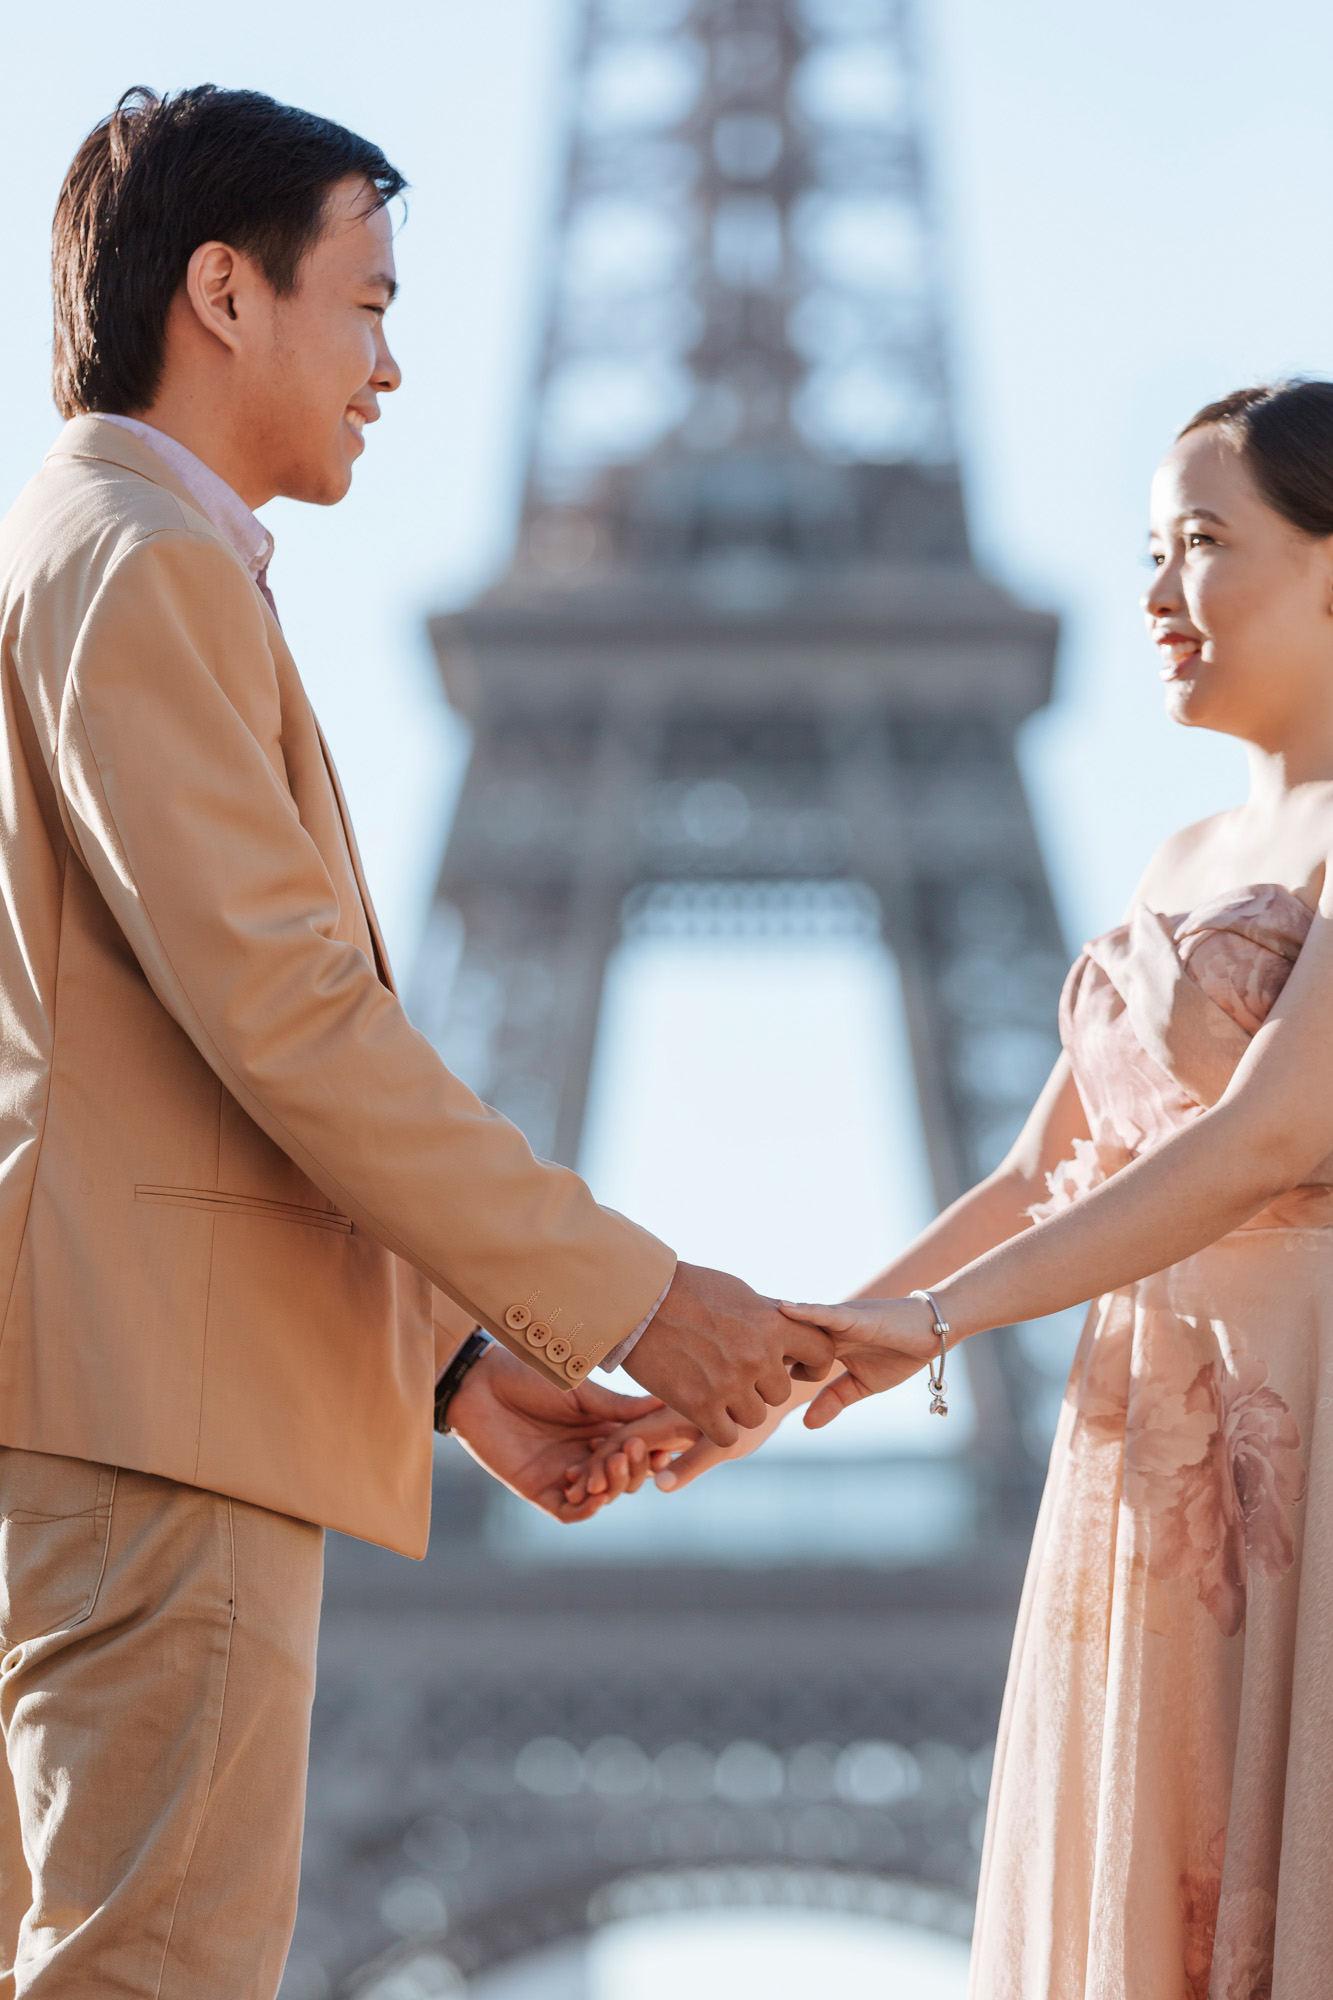 Pre-wedding couple portrait holding hands and smiling by the Eiffel Tower in sunrise captured by Photographer in Paris Federico Guendel